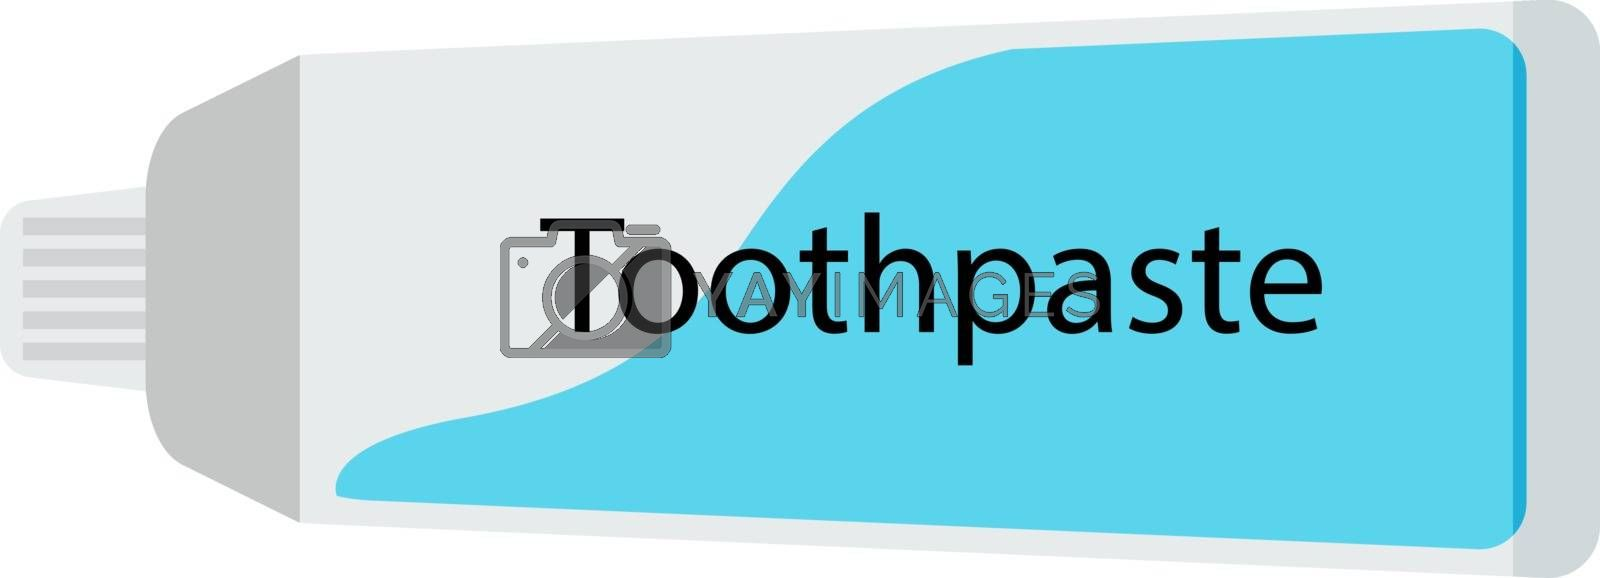 Toothpaste, illustration, vector on white background